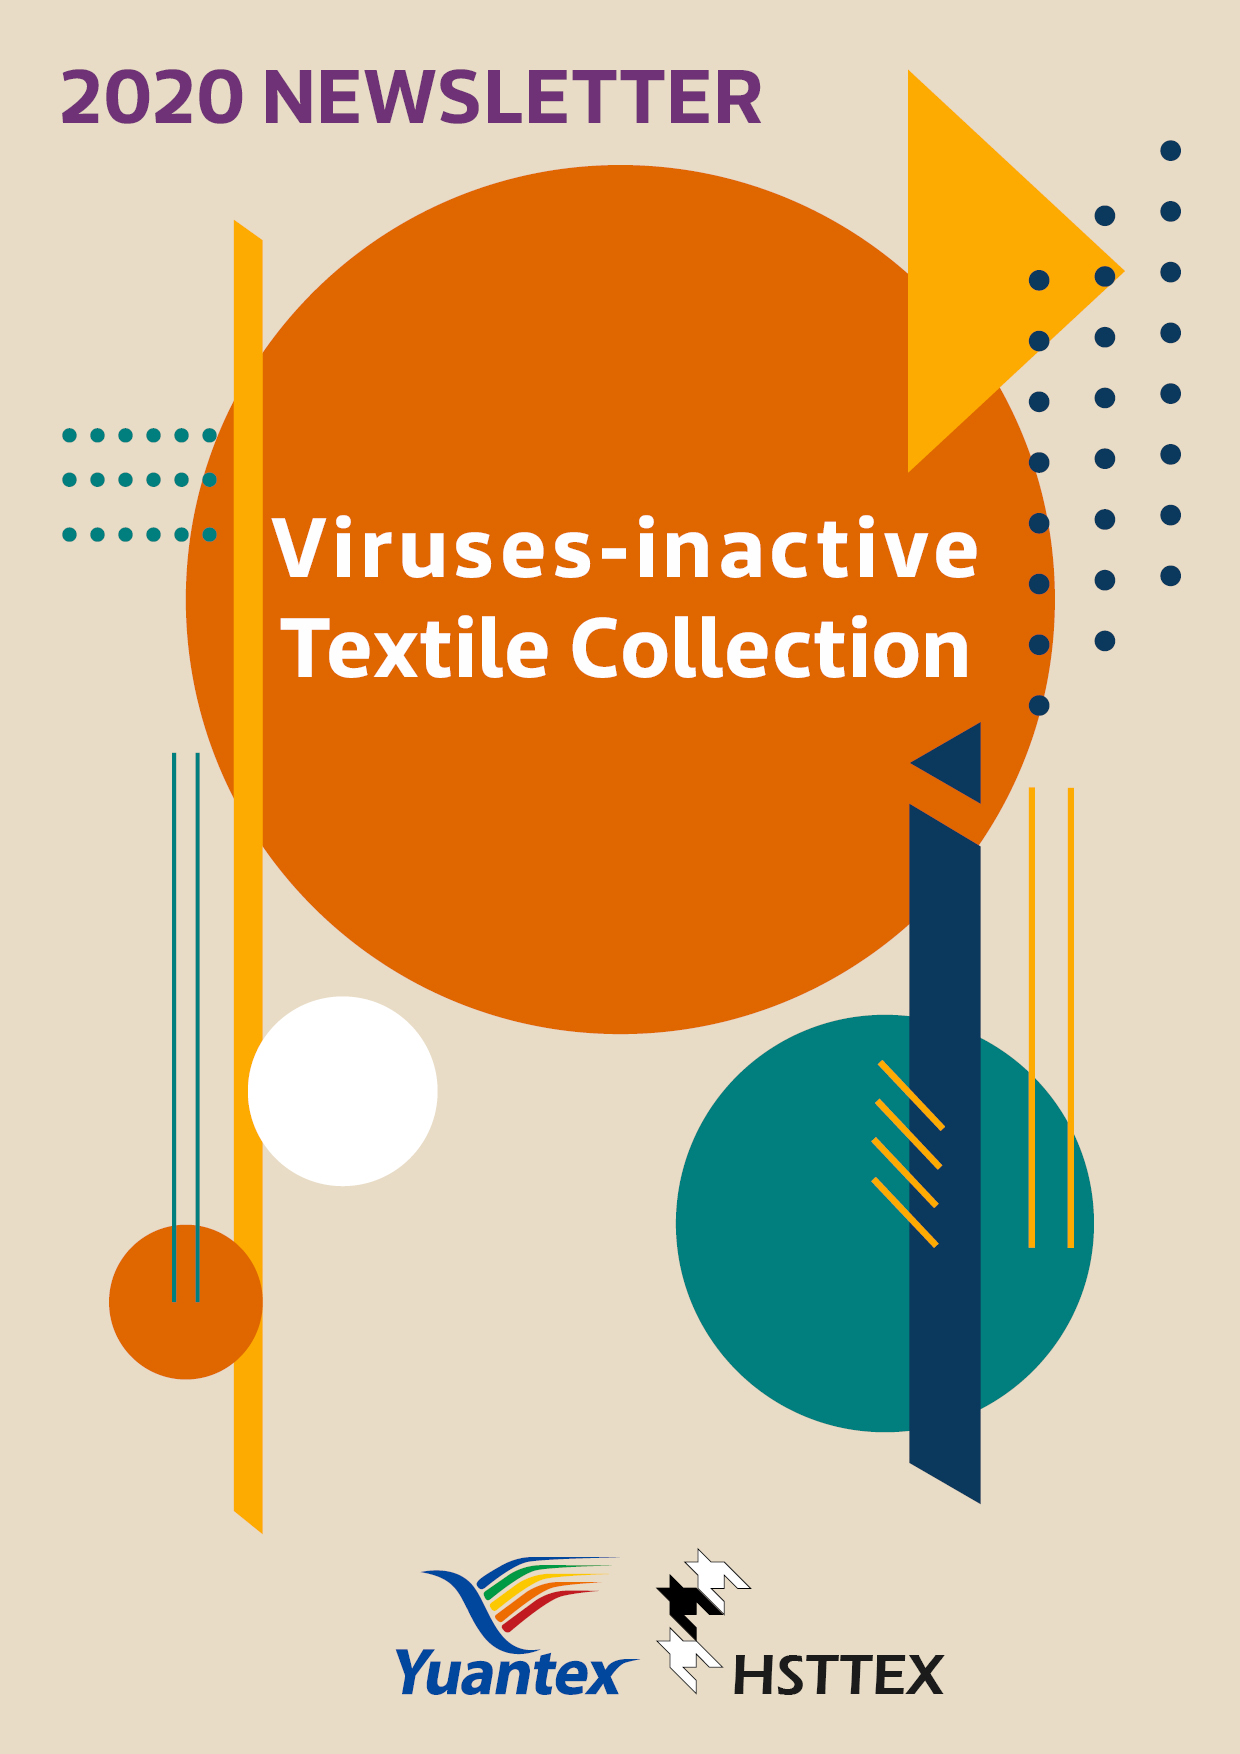 Viruses inactive Textile